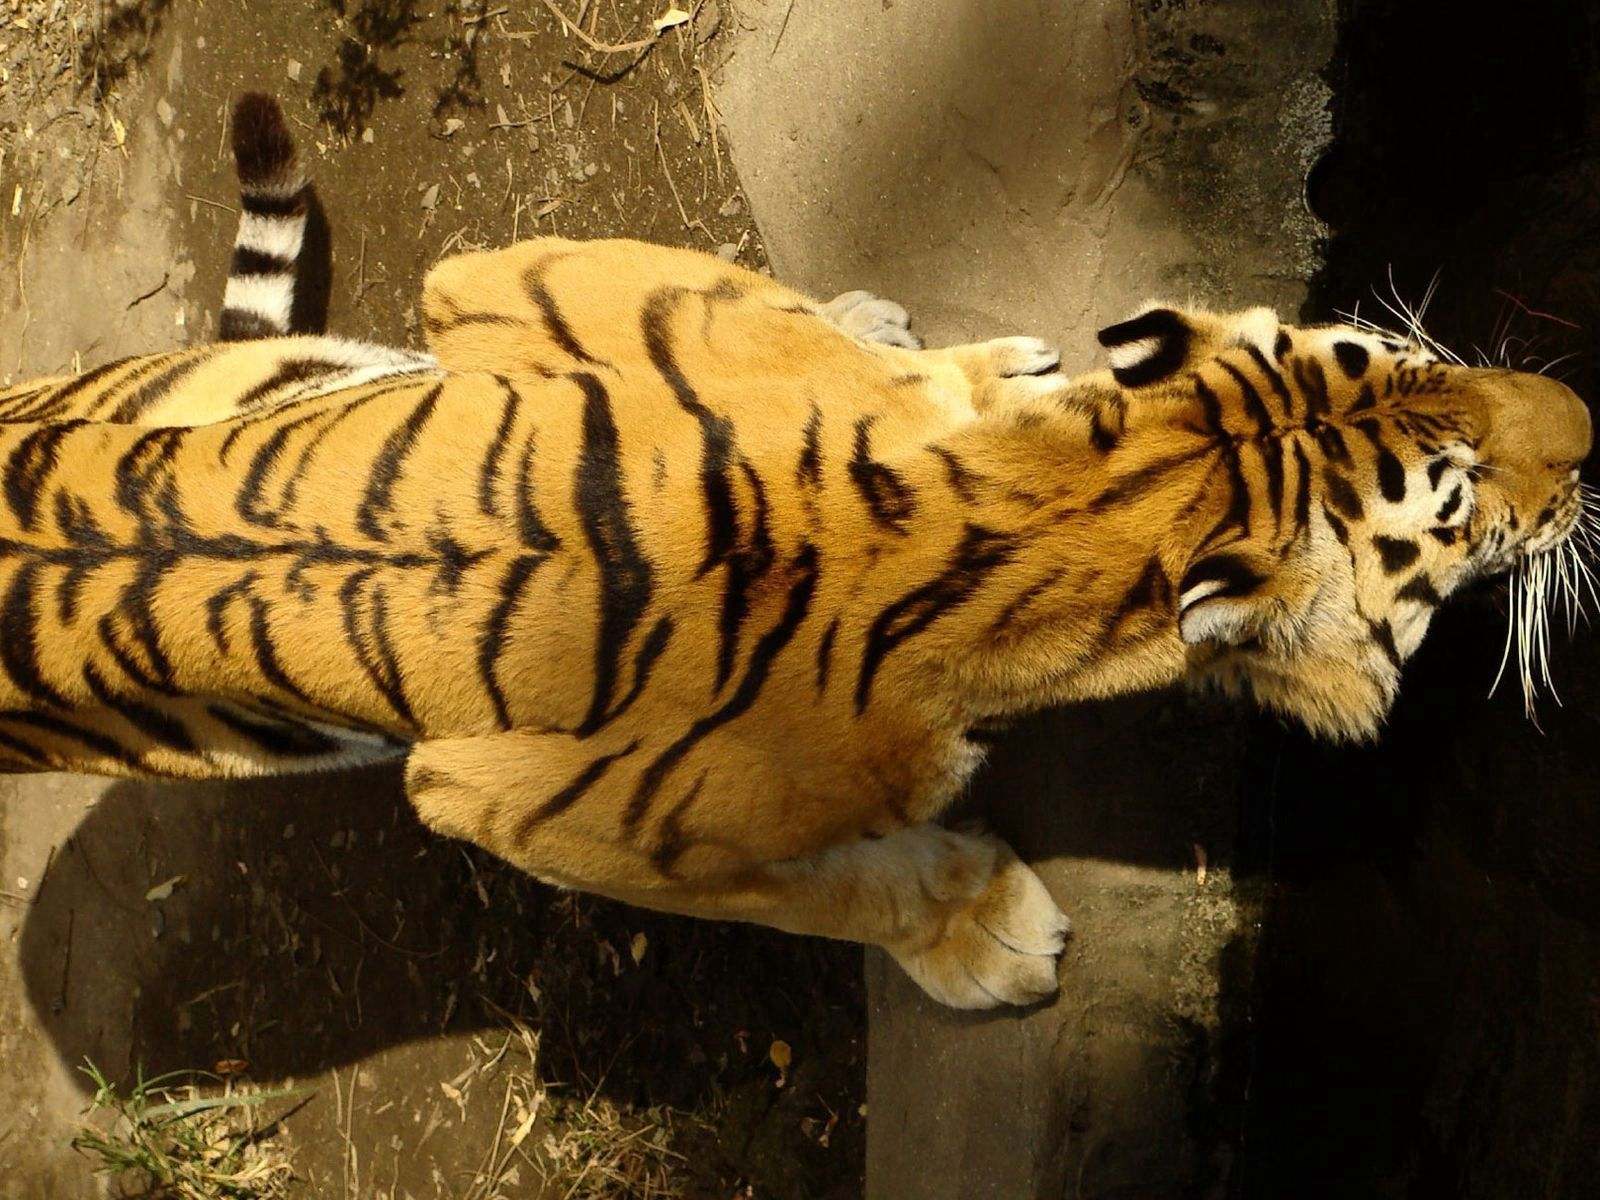 148044 download wallpaper Animals, Tiger, Striped, Crawl, Big Cat screensavers and pictures for free